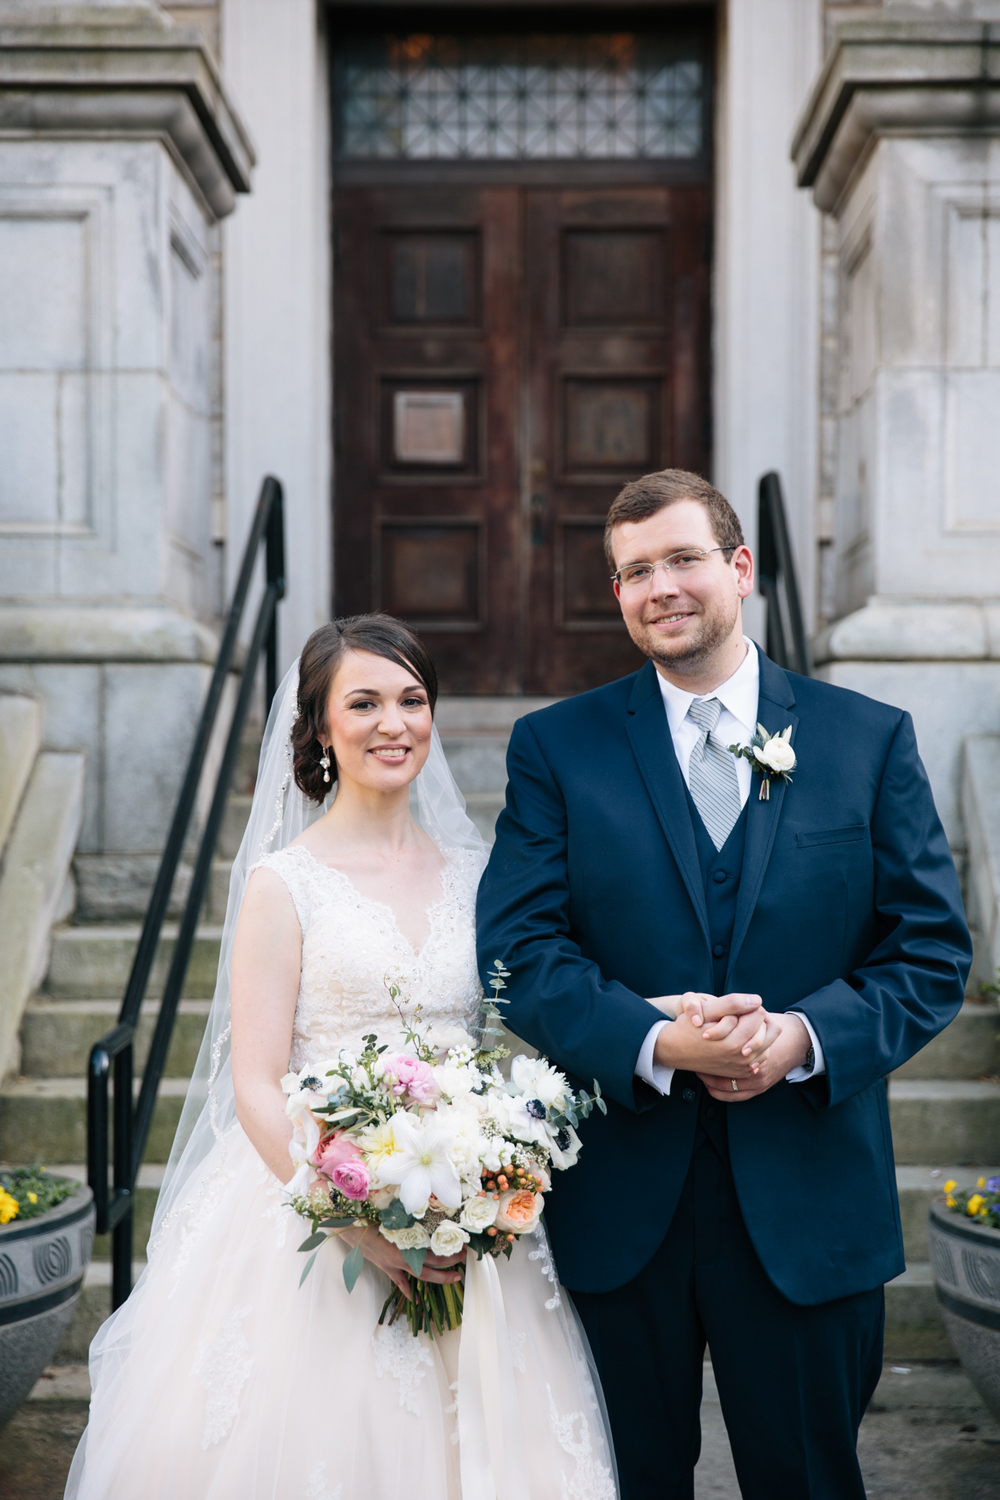 Britt-Griffin Wedding at Historic Dekalb Courthouse | Photo:   Tim Redman